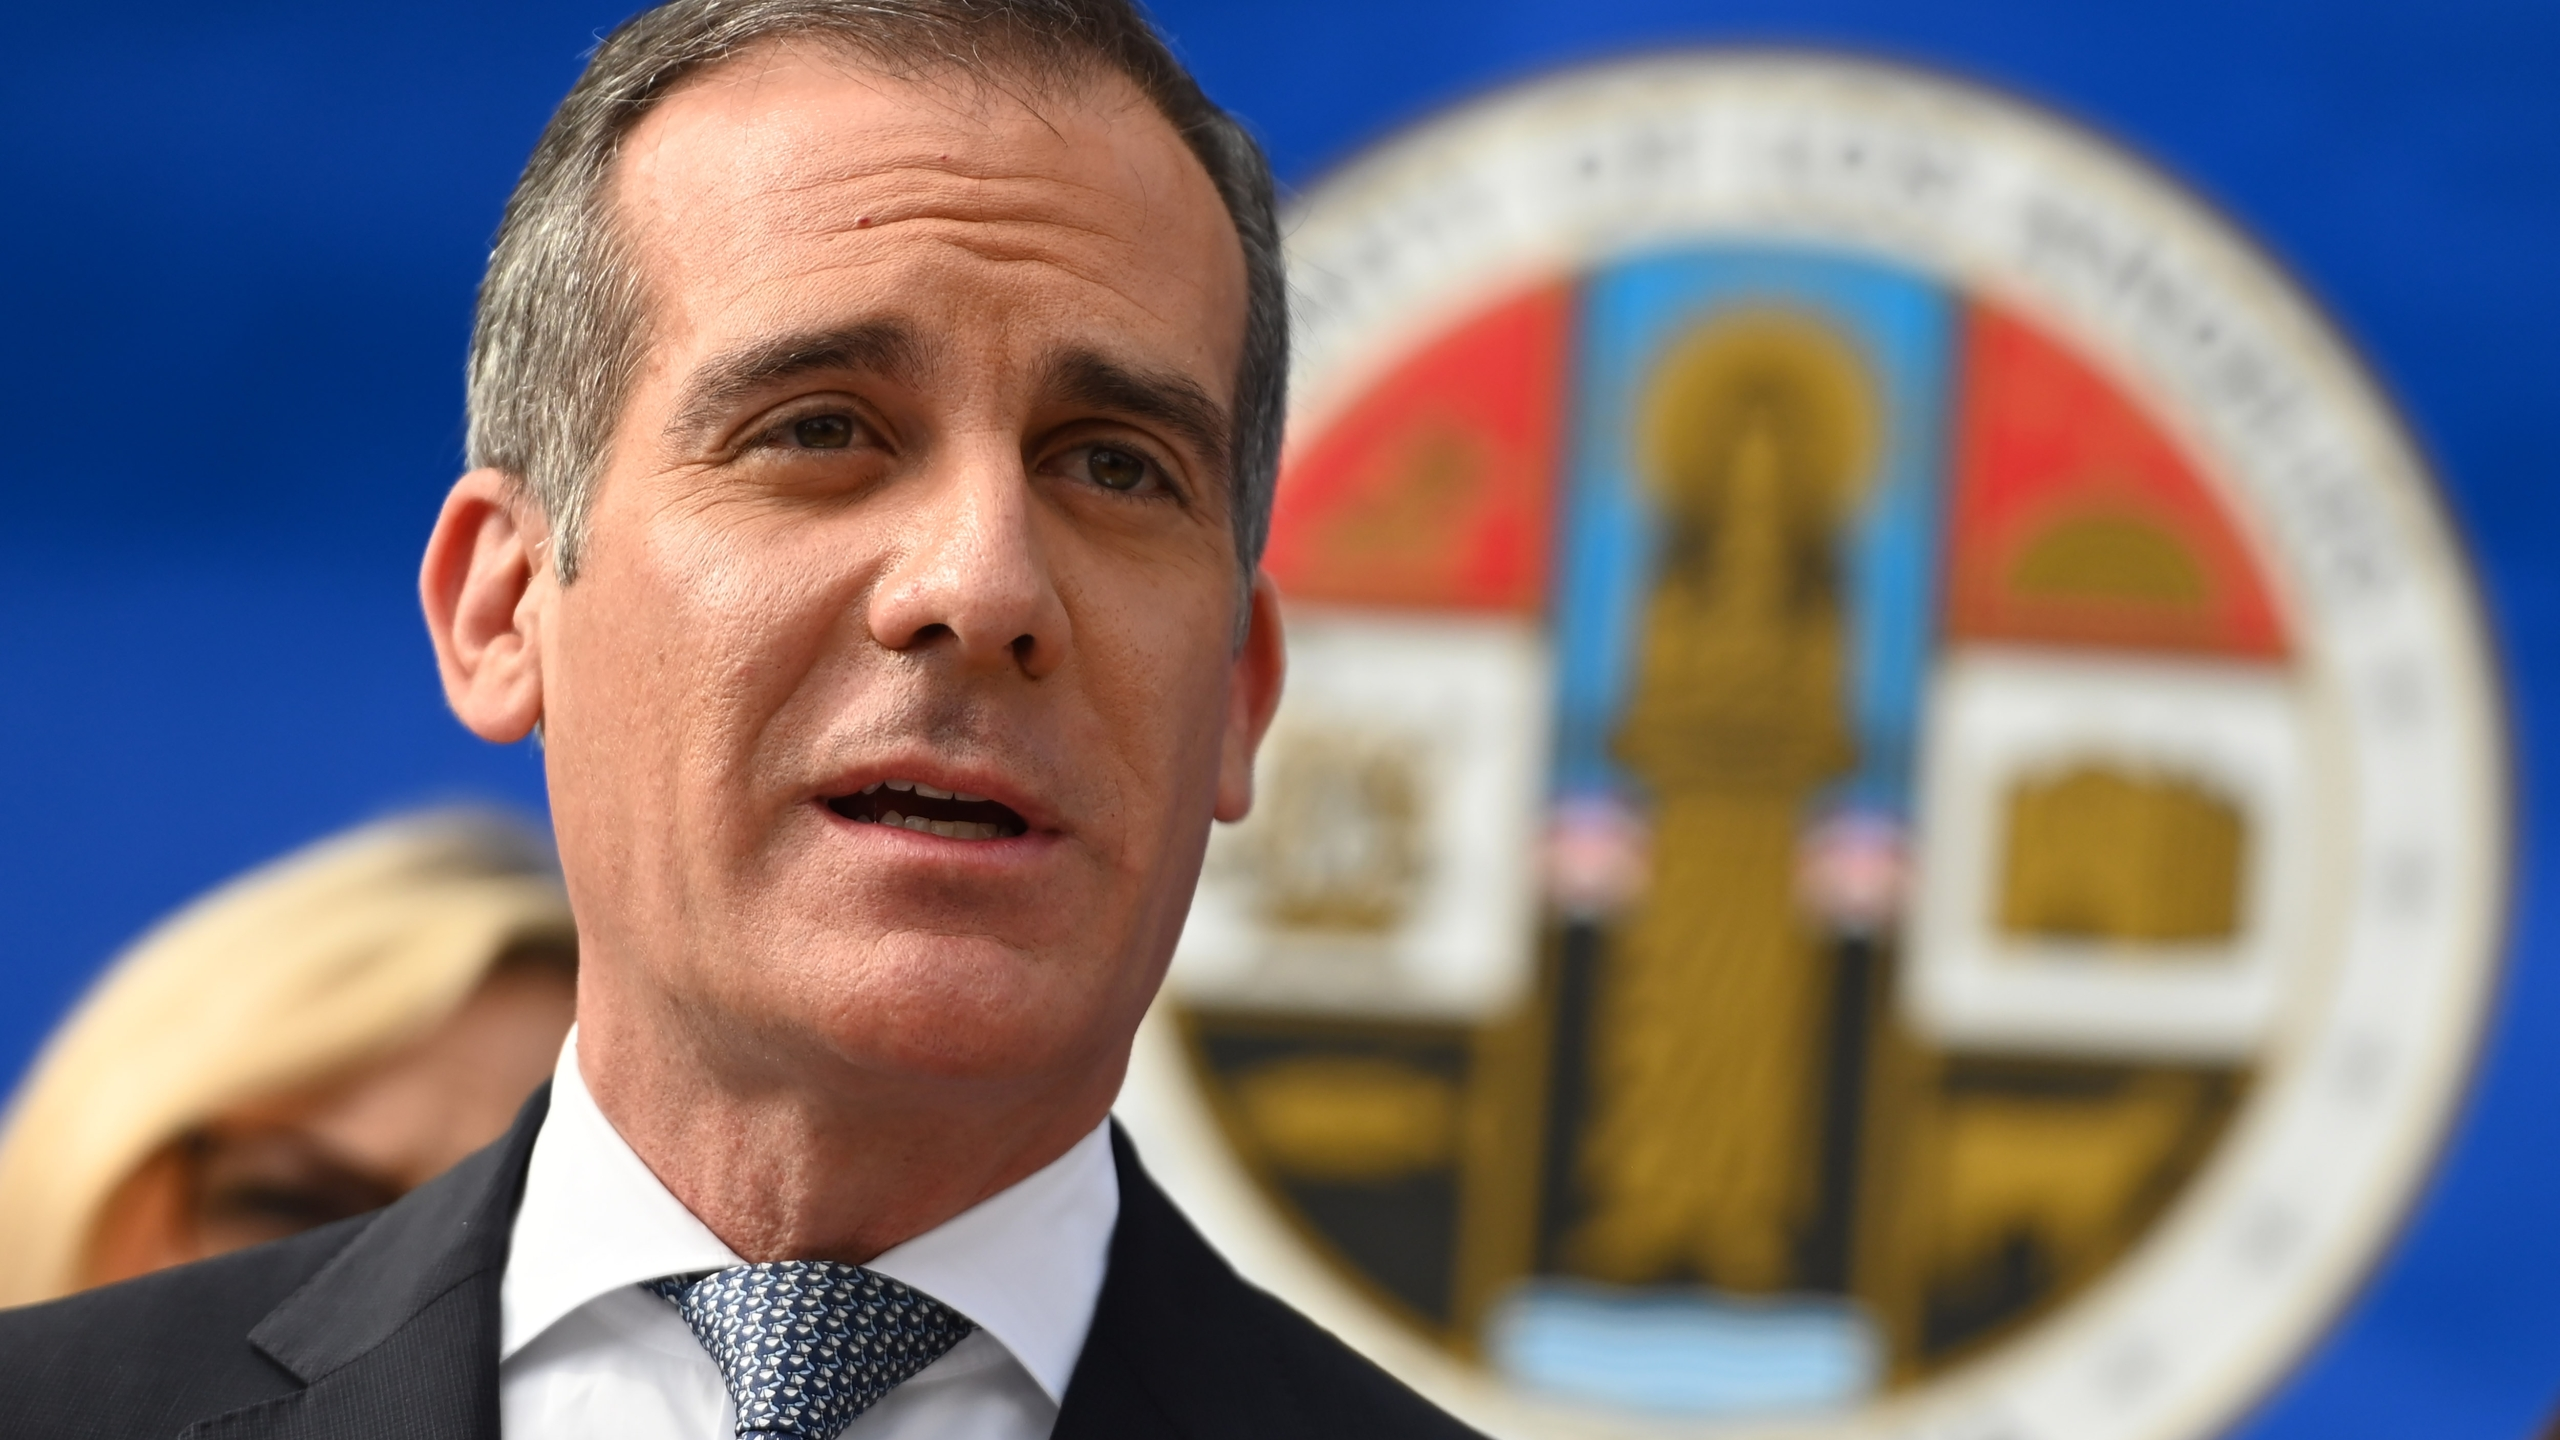 Mayor Eric Garcetti speaks at a L.A. County Health Department press conference on the novel coronavirus on March 4, 2020, in Los Angeles. (ROBYN BECK/AFP via Getty Images)